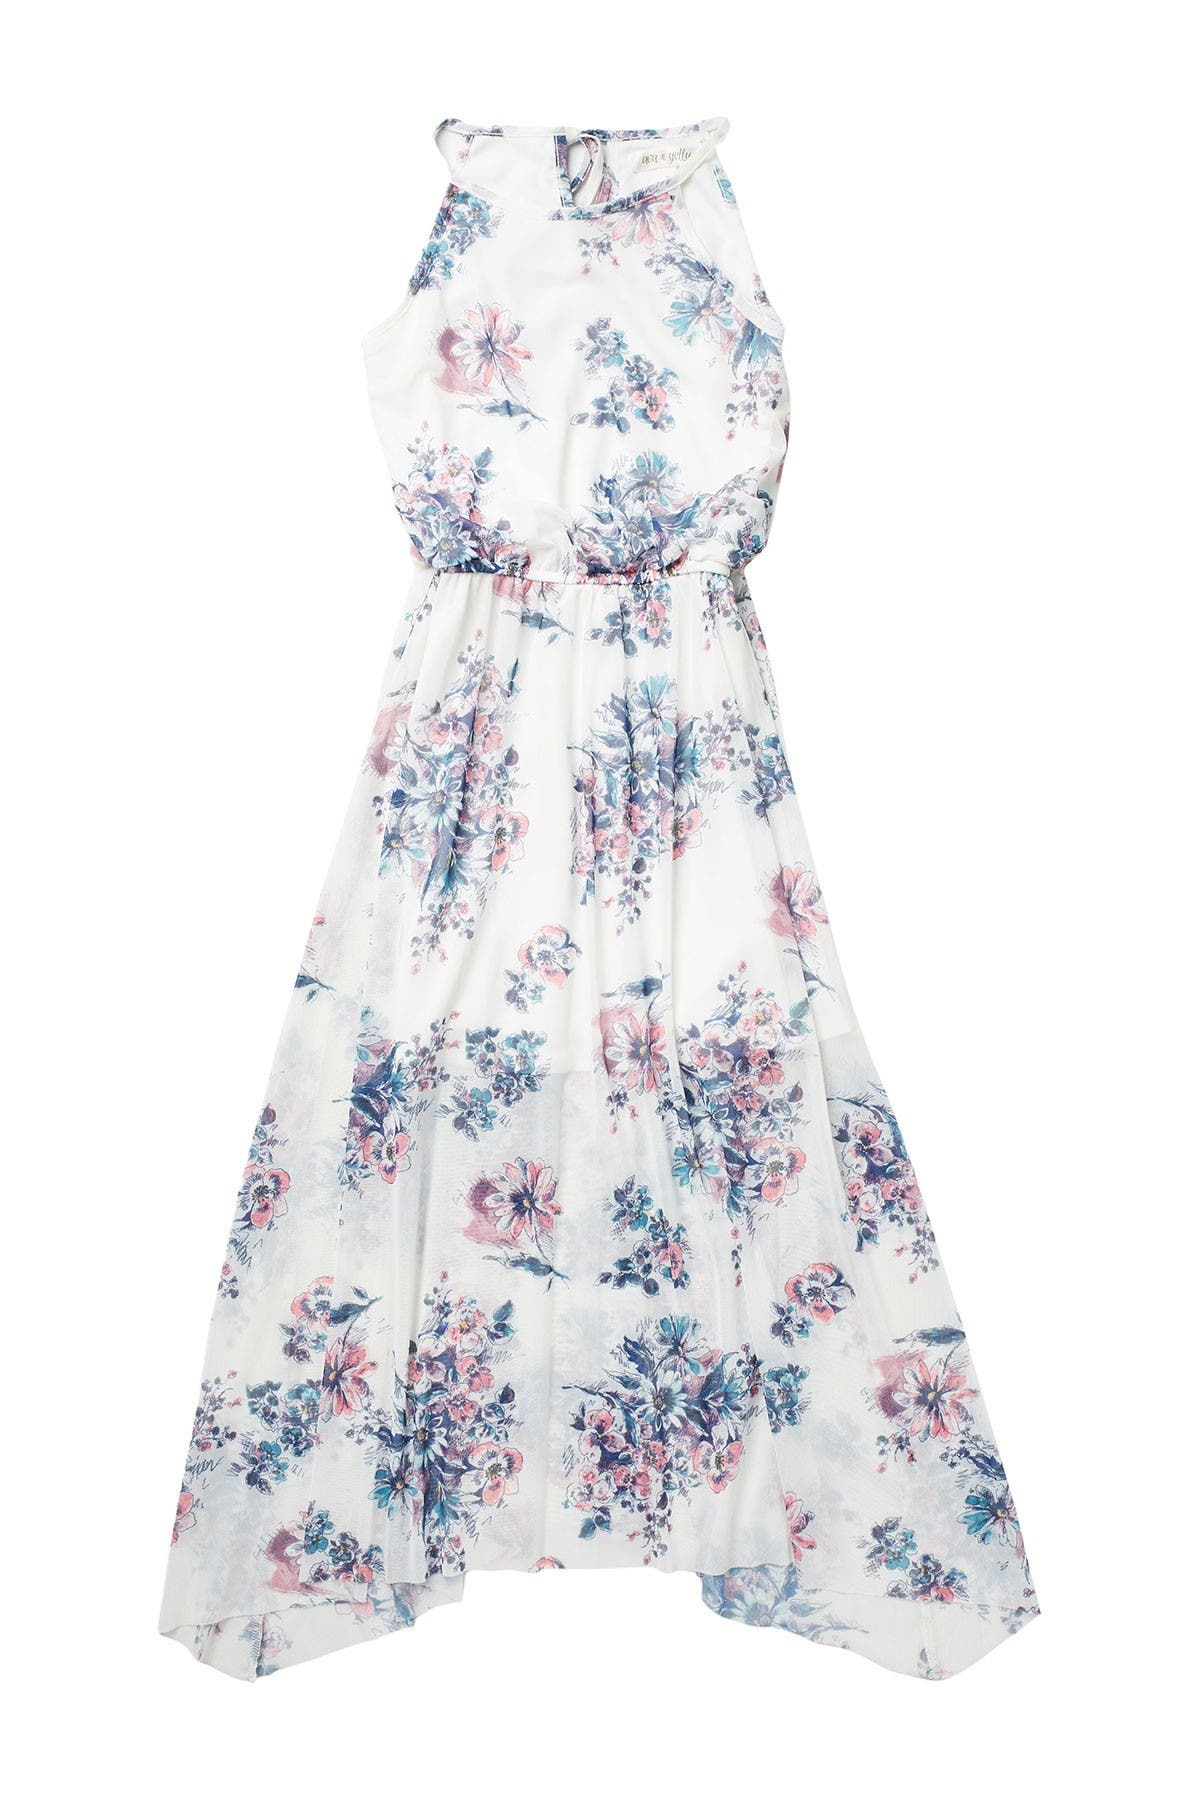 Image of AVA AND YELLY High Neck Floral Print Dress